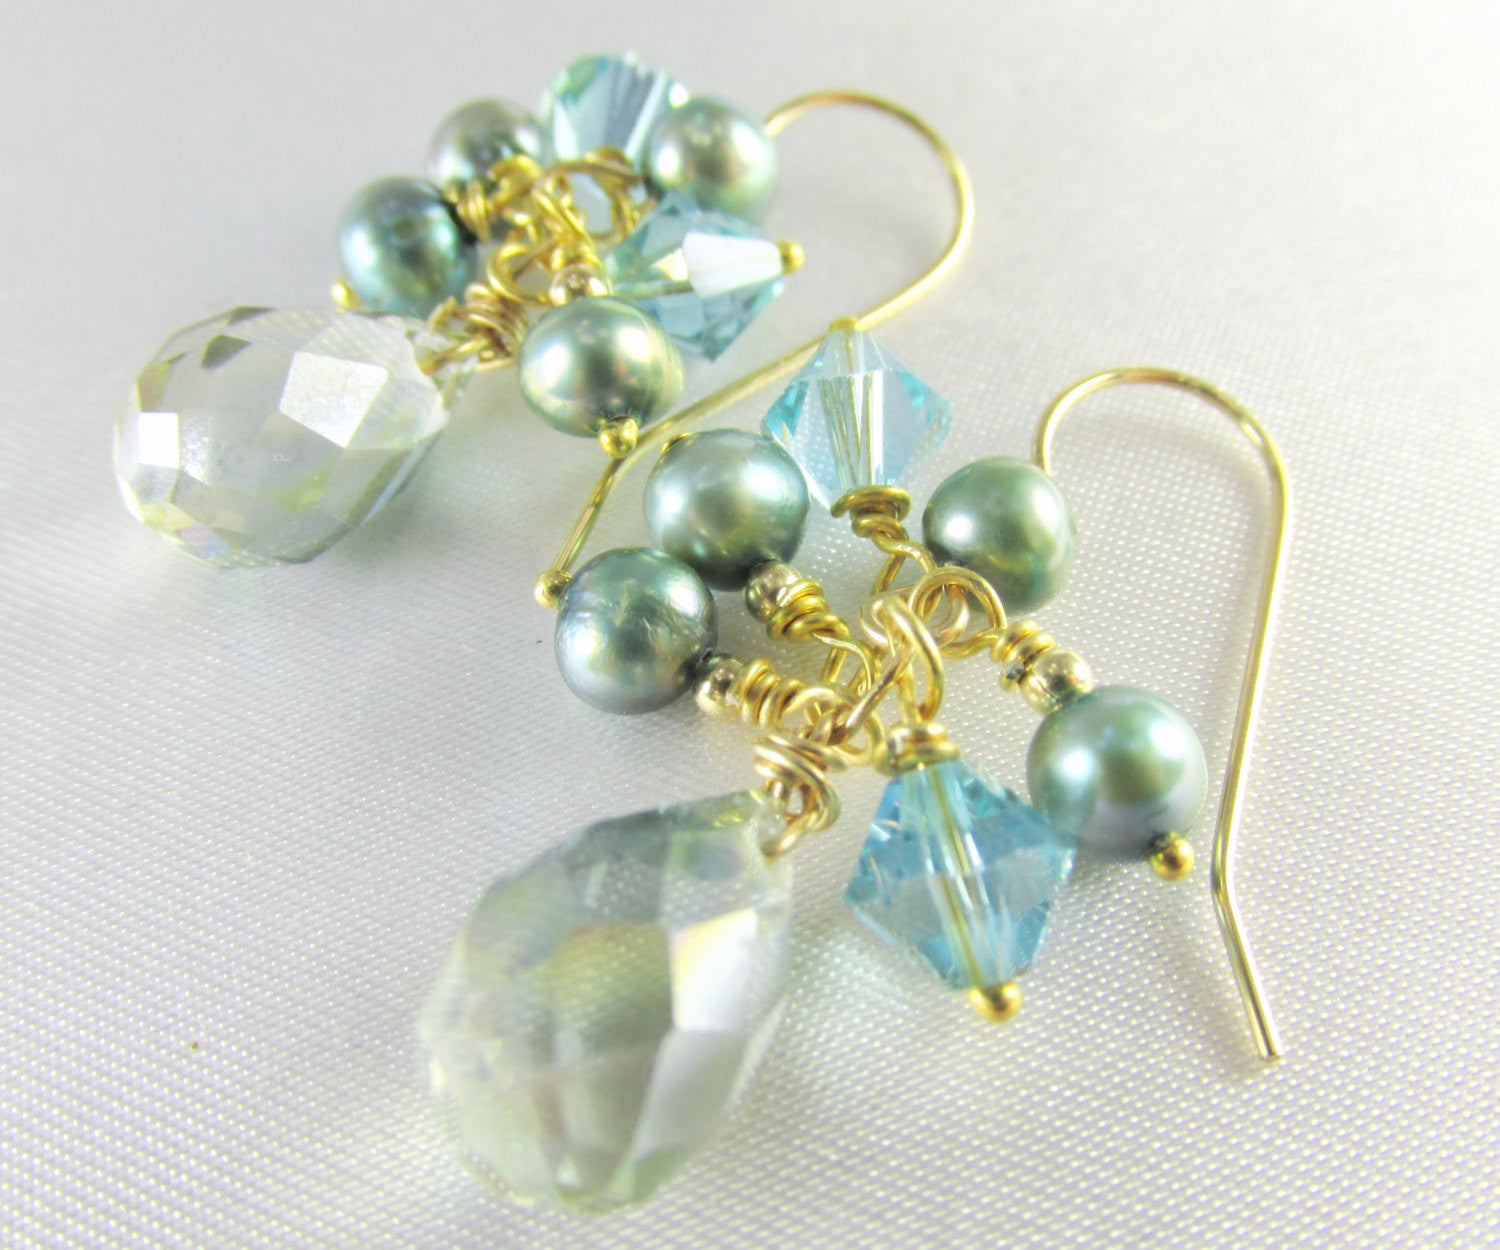 Seaside Aqua Teal Faceted Crystal and Freshwater Pearl Earrings  on 14k Gold Fill - Odyssey Creations